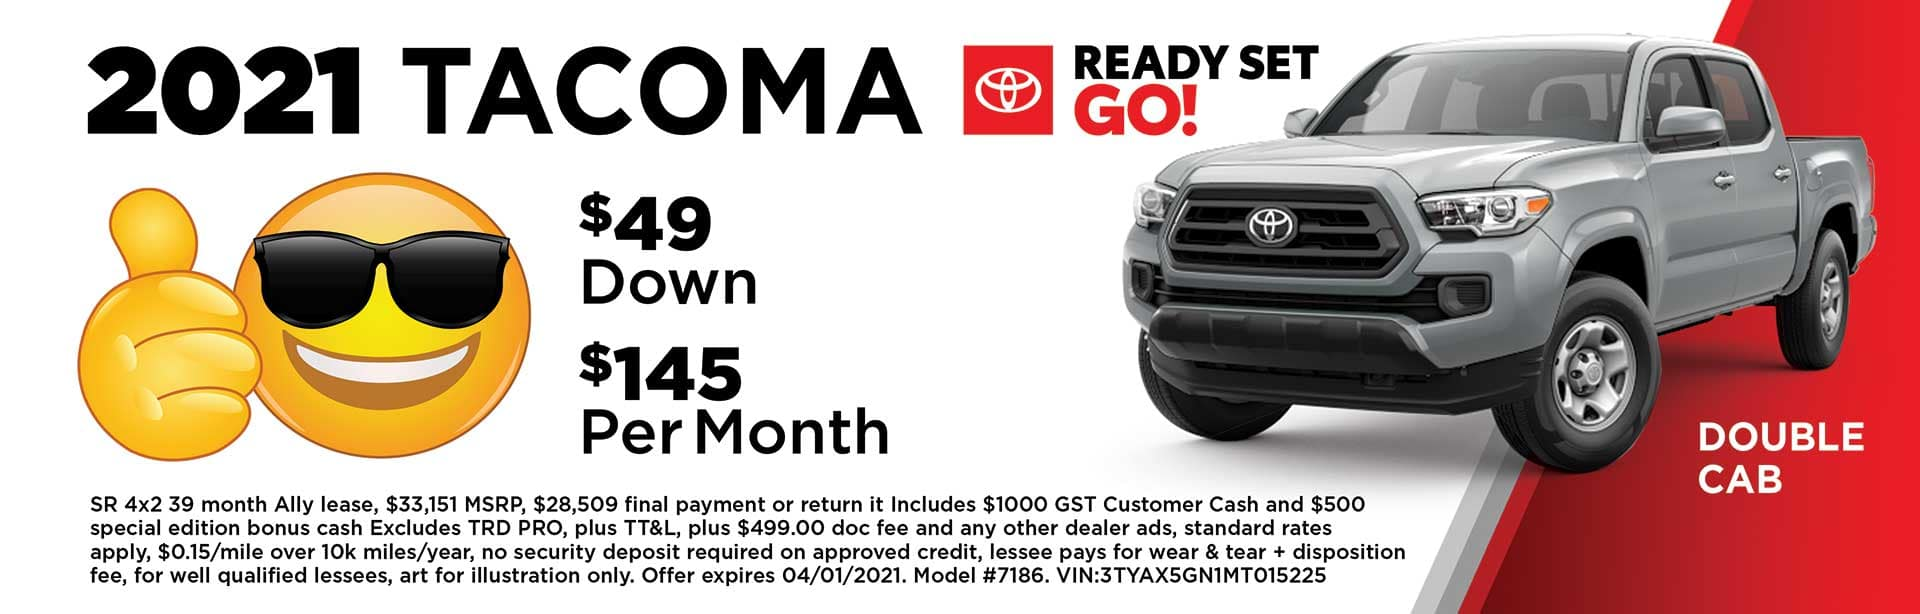 1920×614-2021Tacoma-49Down145Month